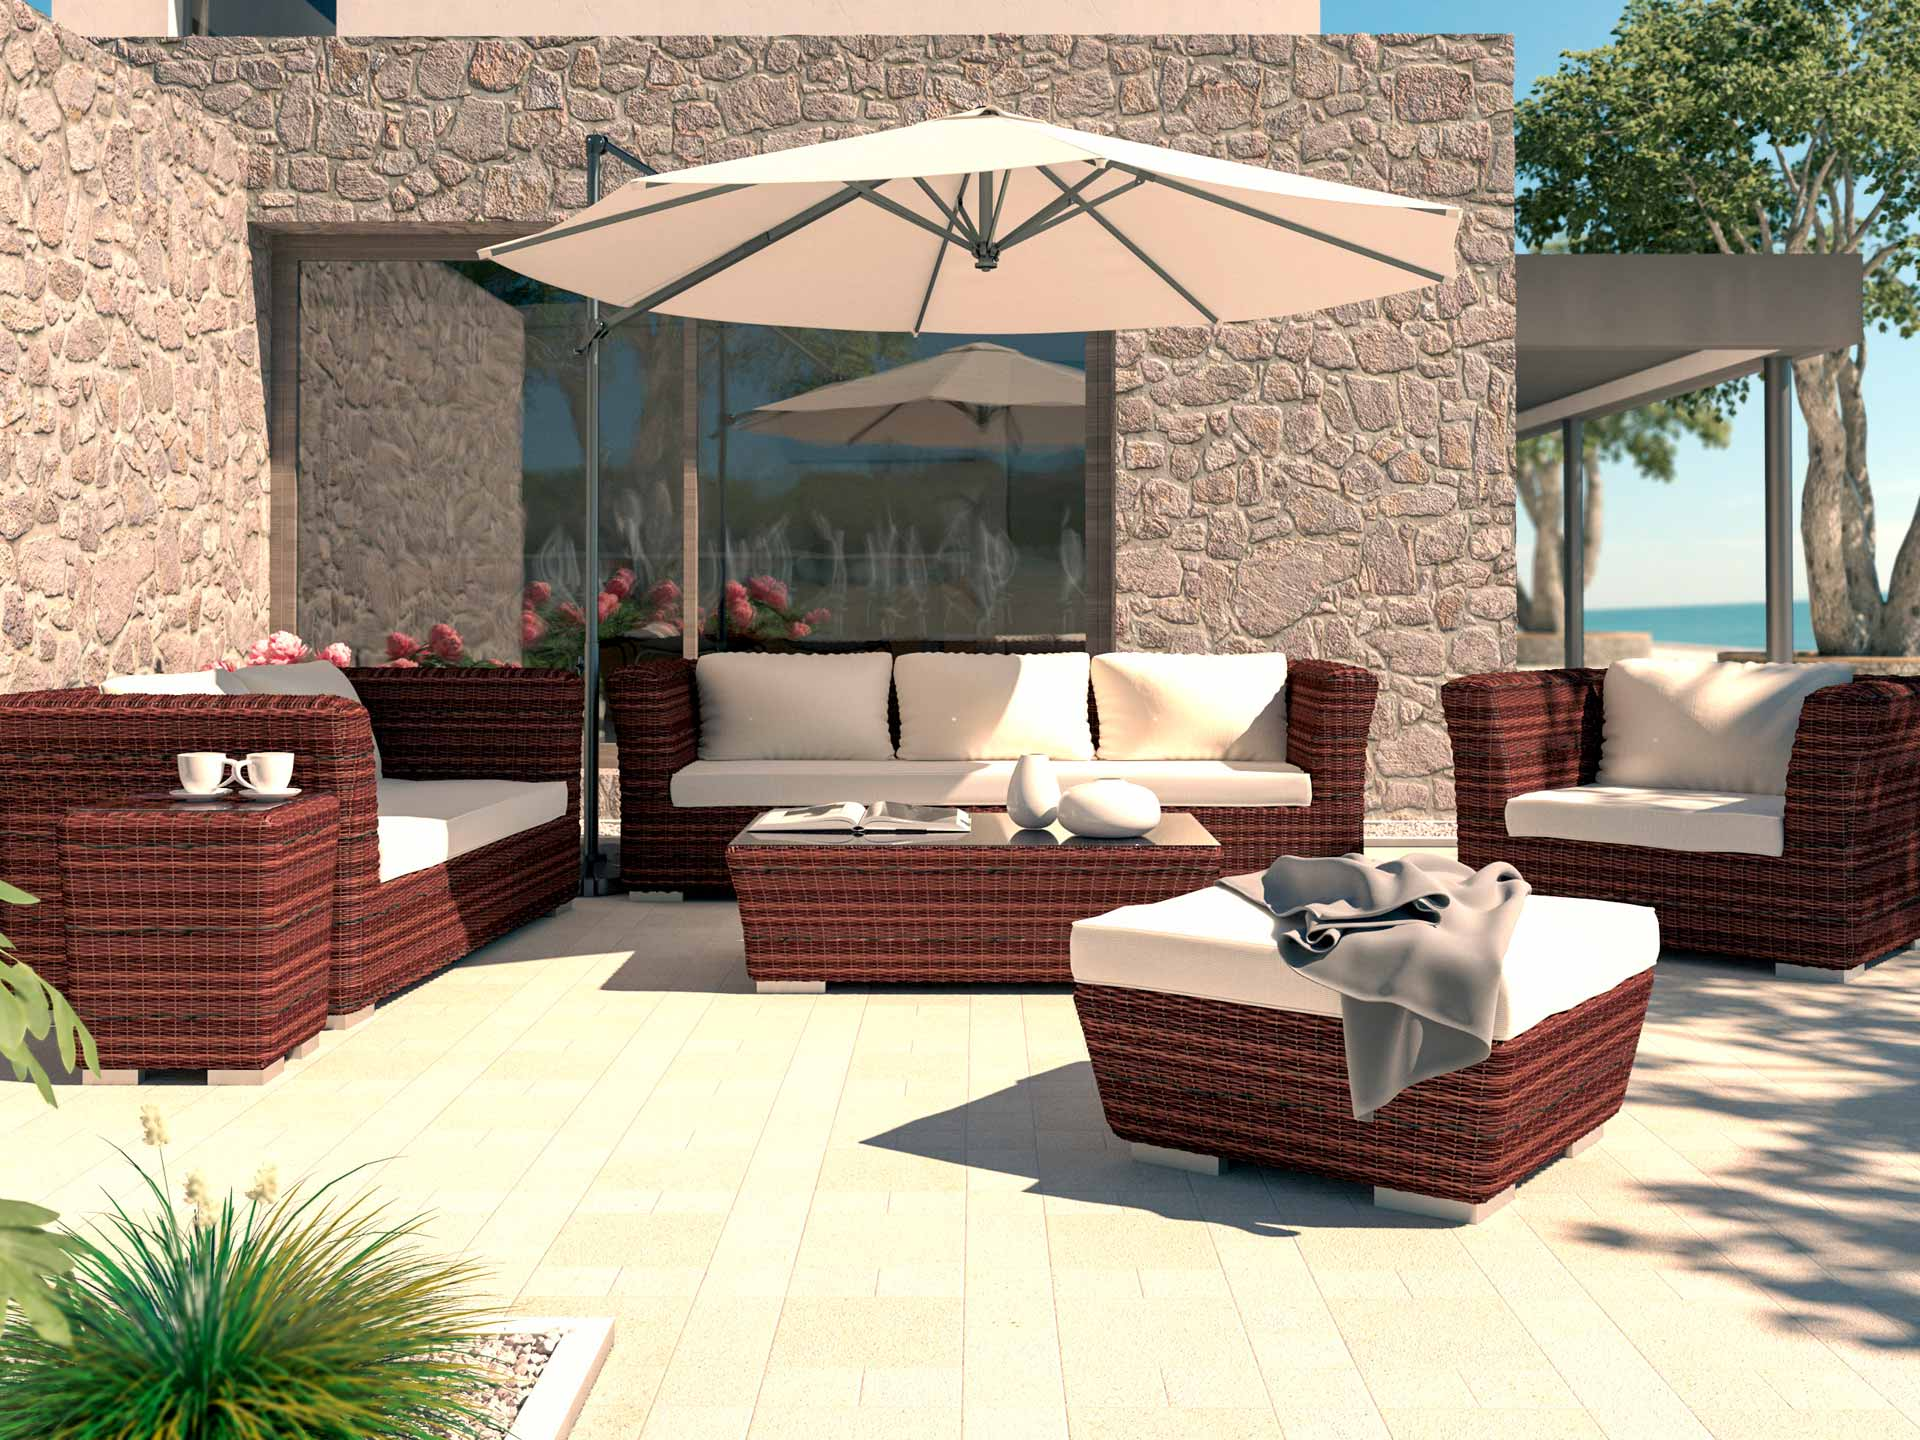 artelia terrassenm bel sitzgruppe rigantona aus polyrattan. Black Bedroom Furniture Sets. Home Design Ideas